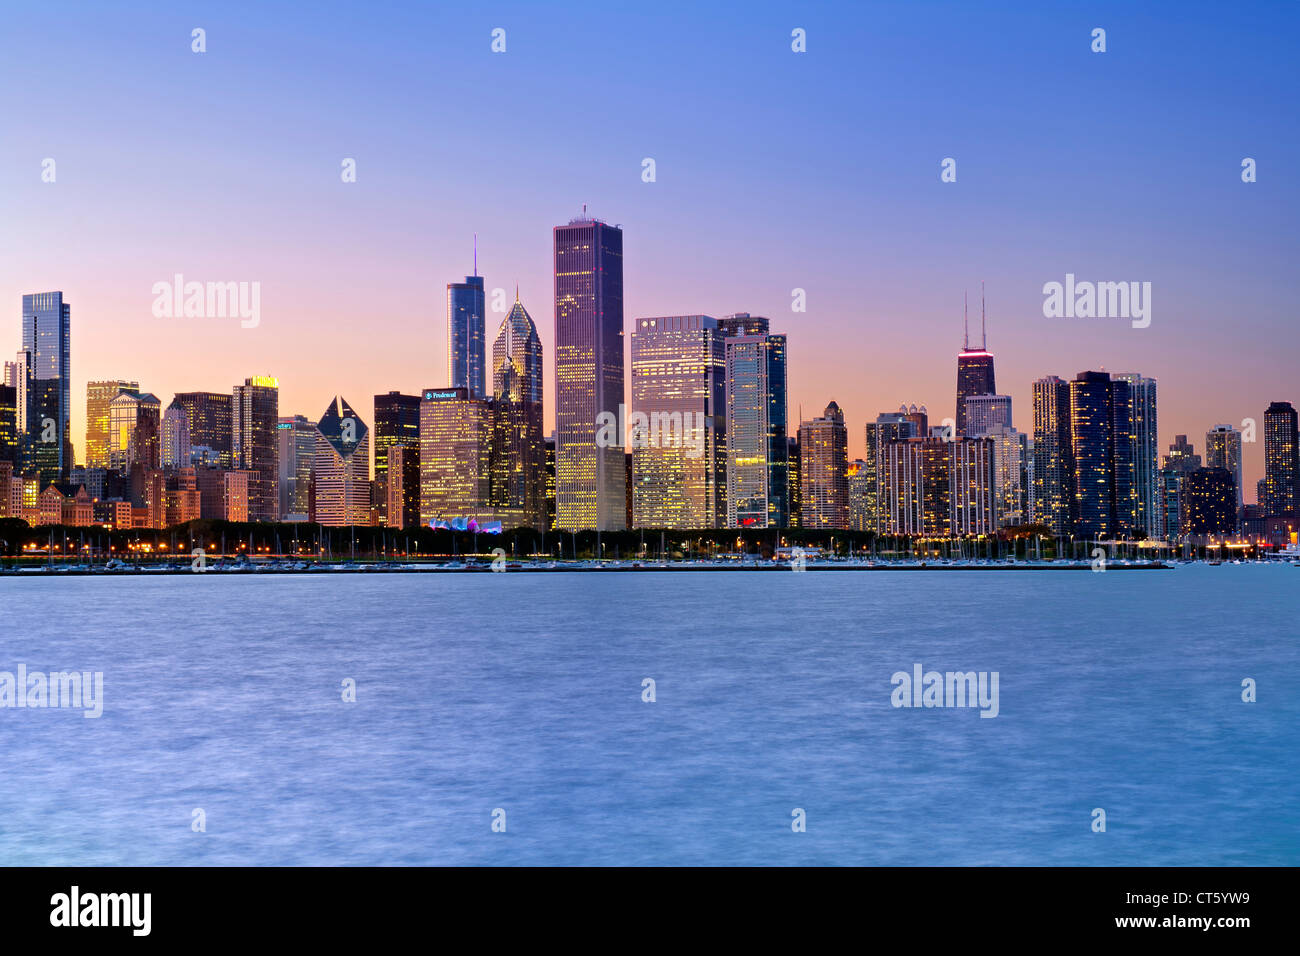 Dusk view of the Chicago skyline in Illinois, USA. - Stock Image